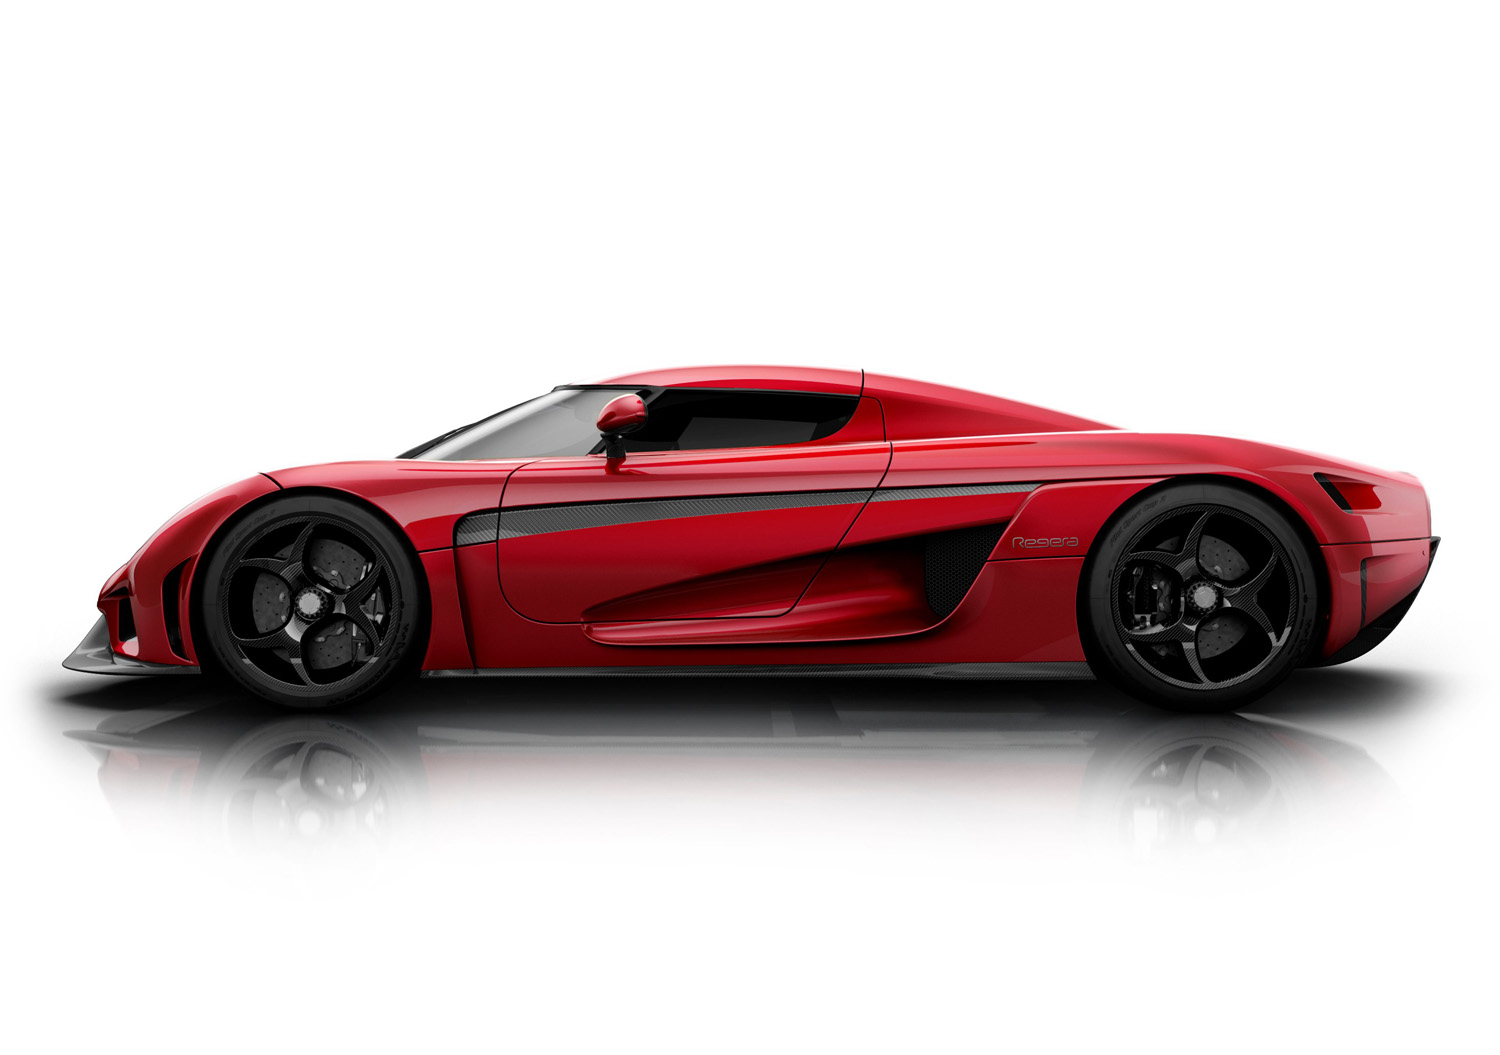 The Koenigsegg Regera is a Crazy 1,500-Plus HP Hybrid Megacar